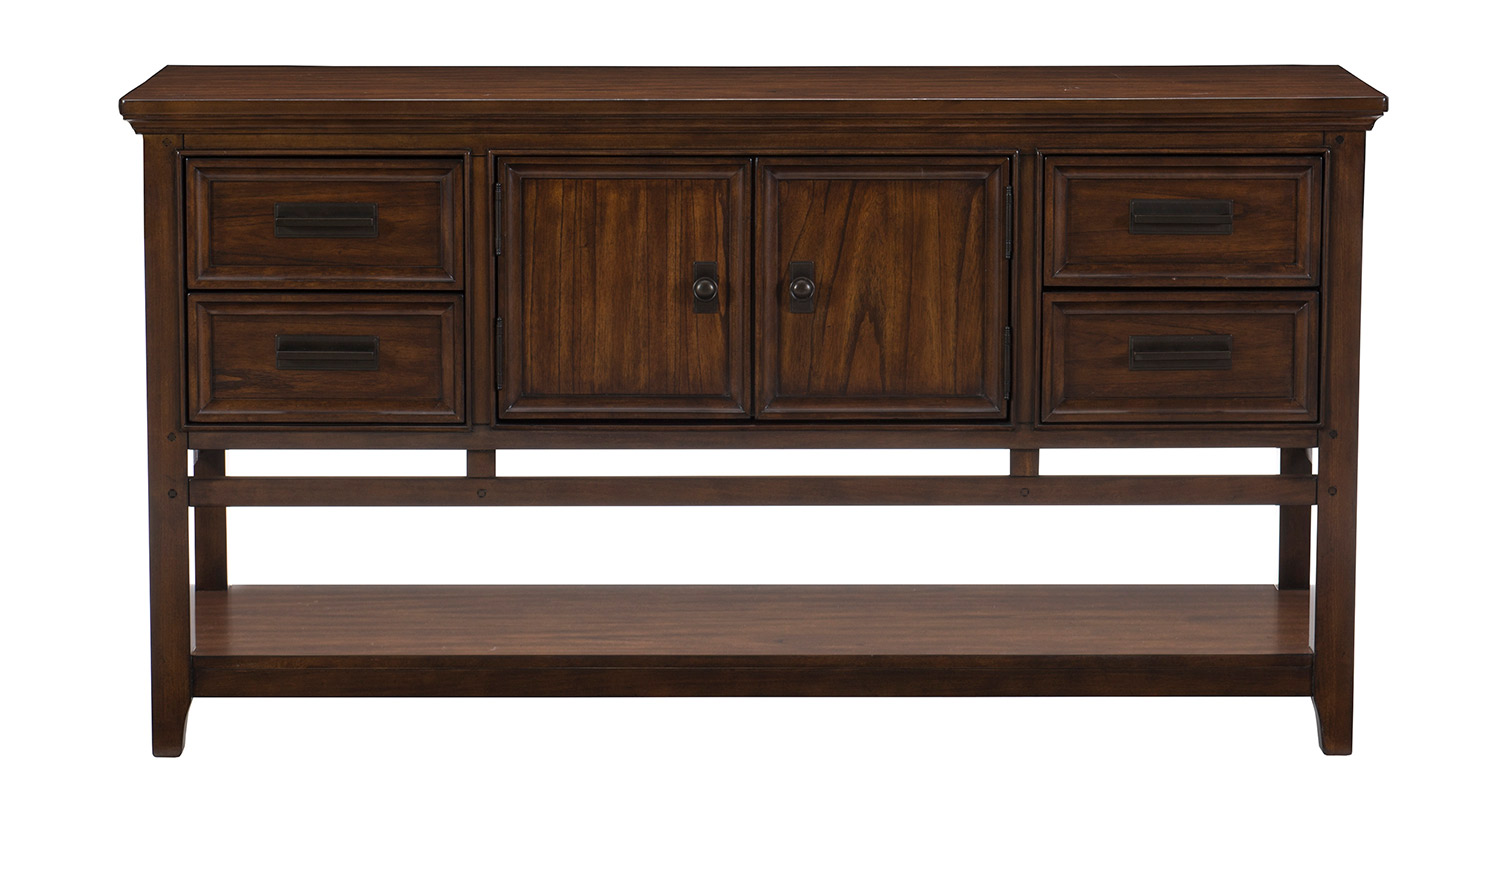 Homelegance Frazier Server - Brown Cherry